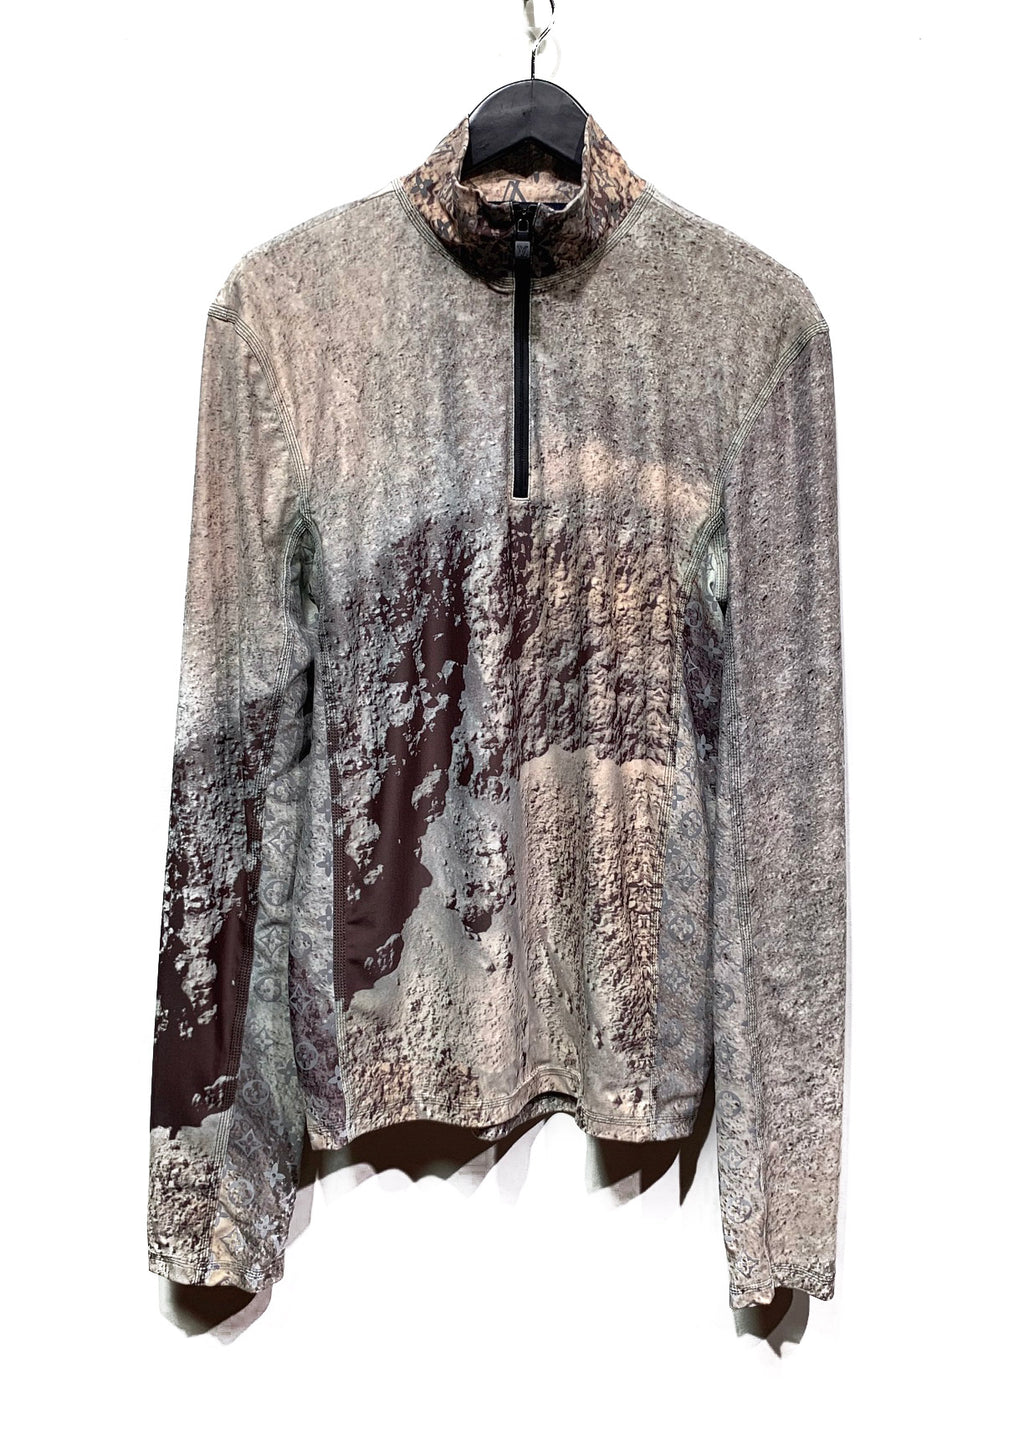 Louis Vuitton FW18 Reflective RashGuard Moon Print Half-zip Sweater